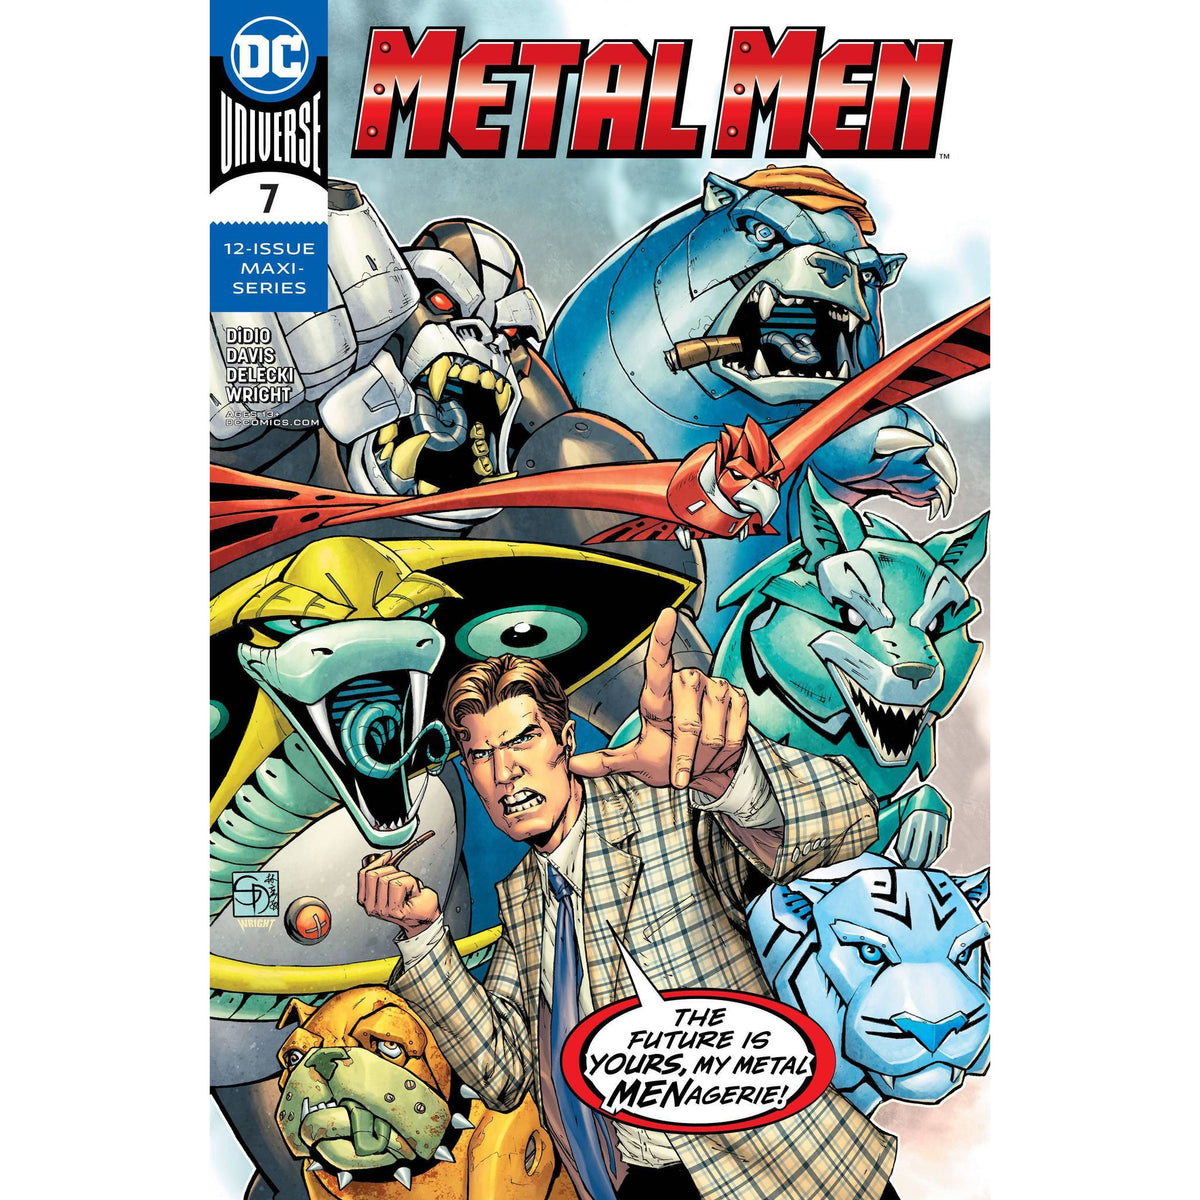 METAL MEN #7 (OF 12) - MAIN COVER